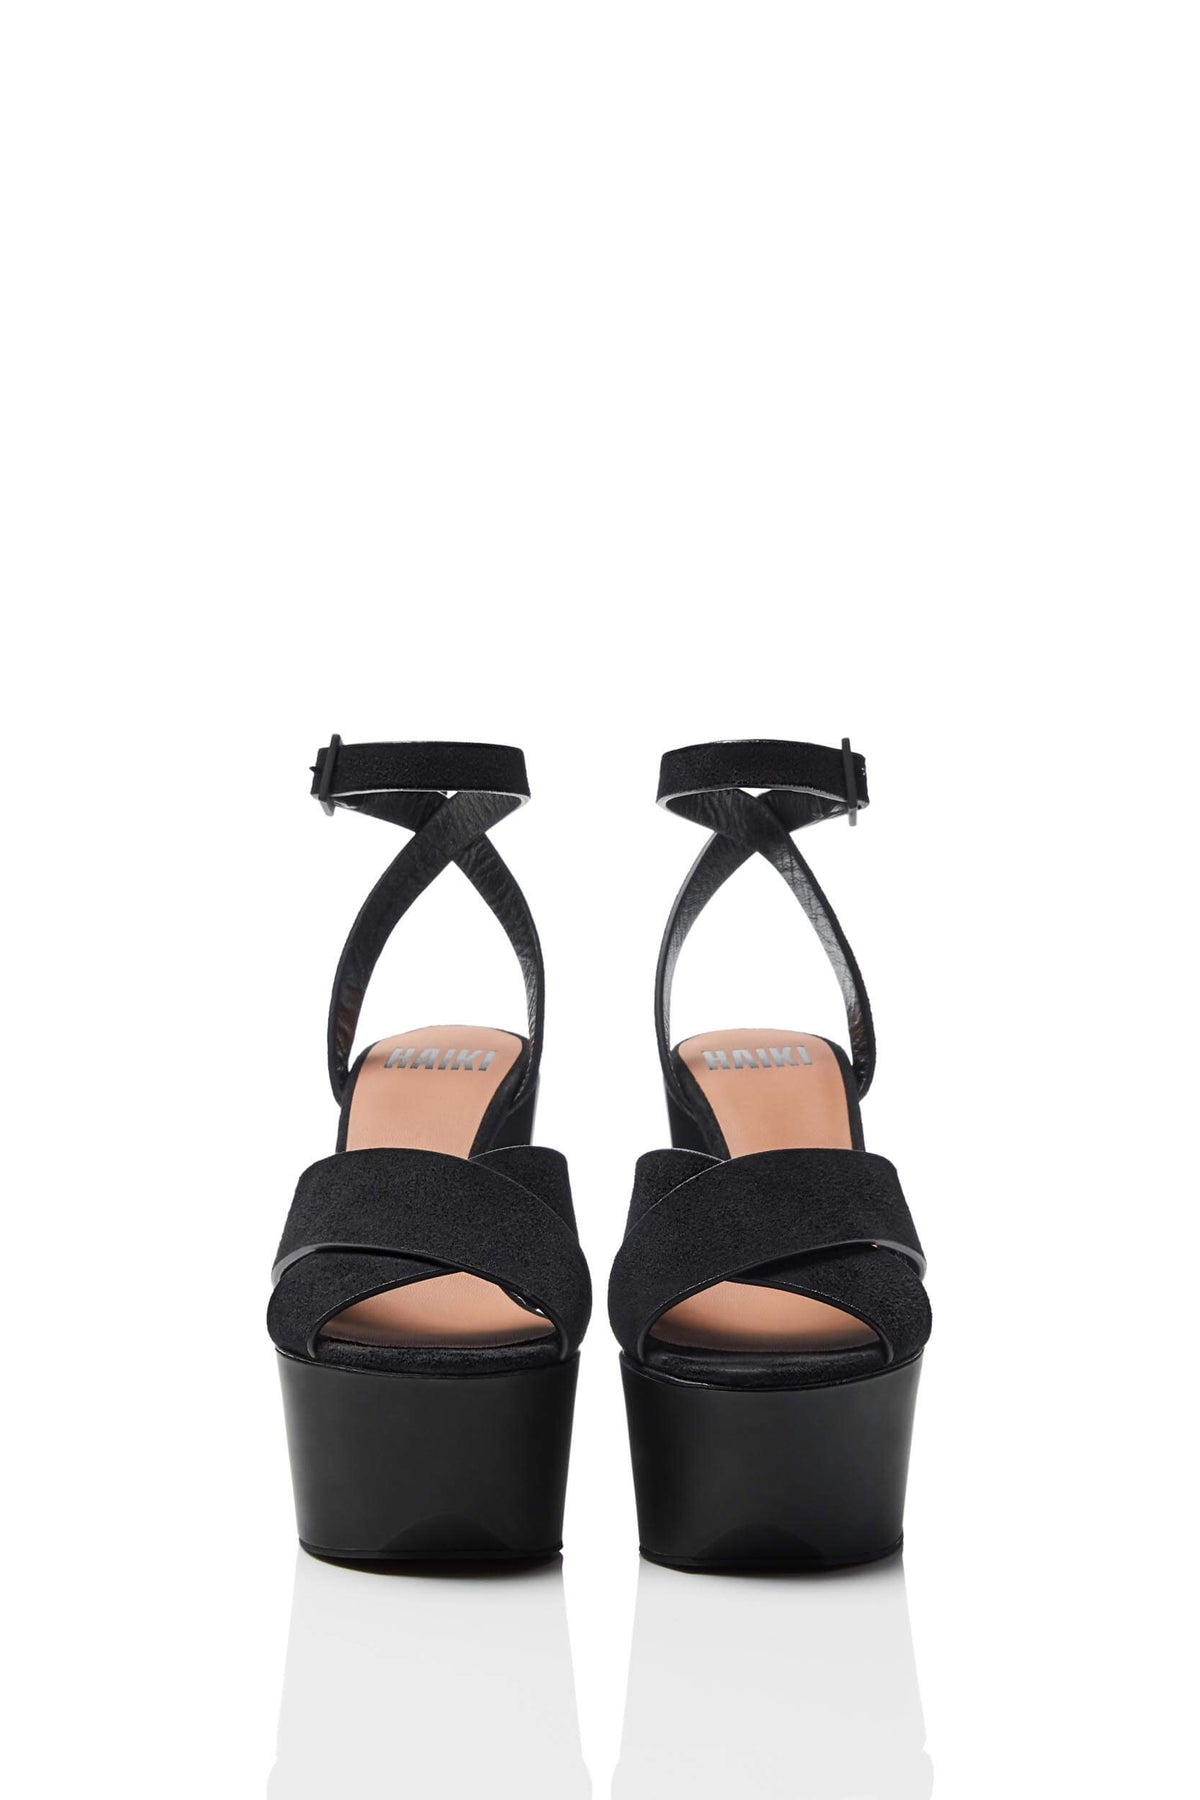 HAIKI 601 - Wide band, crisscross sandal, with self-adjusting ankle strap. Soft Kidsuede with hand-coated edges in black.